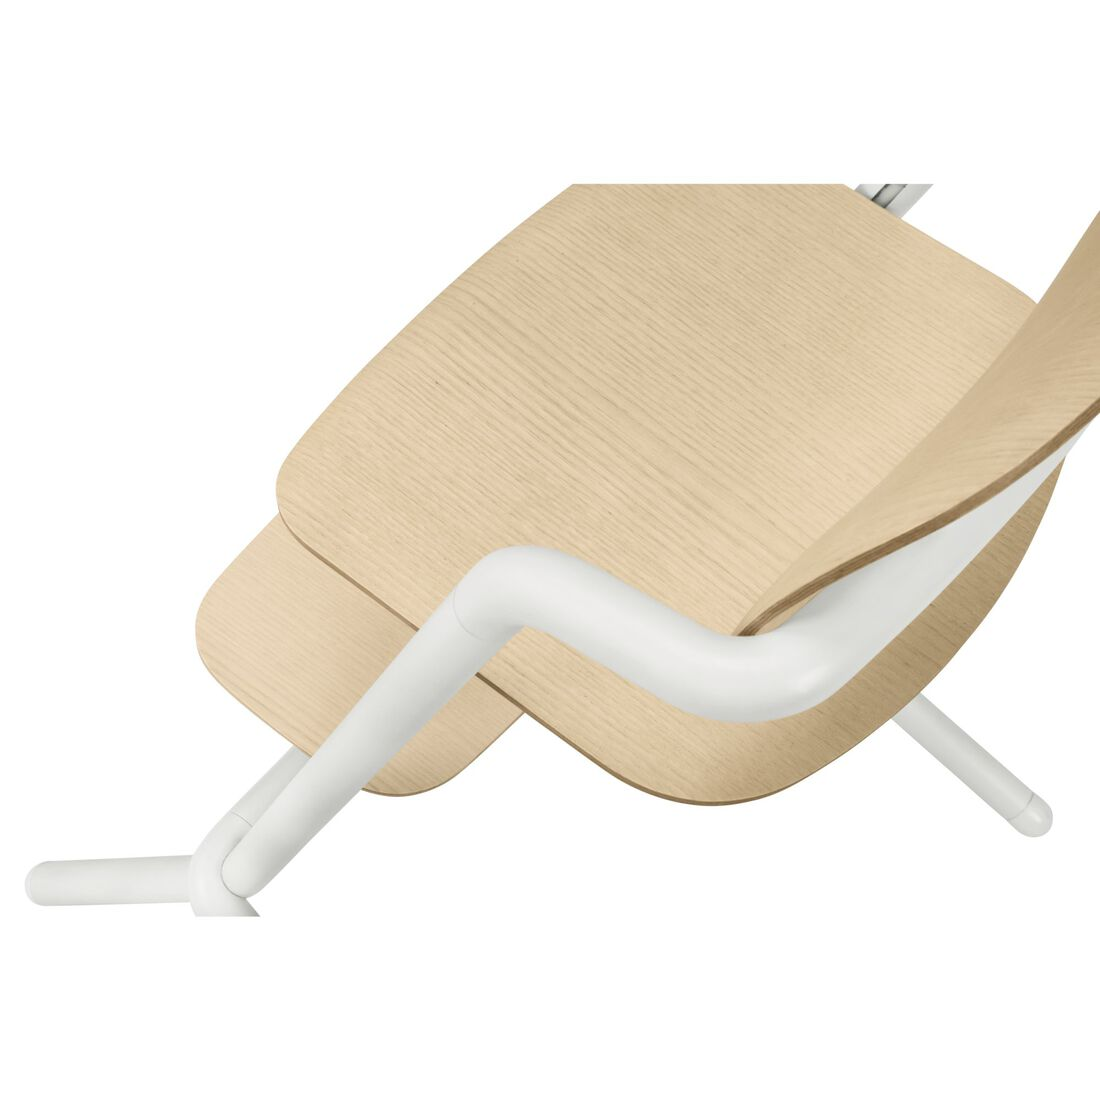 CYBEX Lemo Chair - Porcelaine White (Wood) in Porcelaine White (Wood) large image number 4